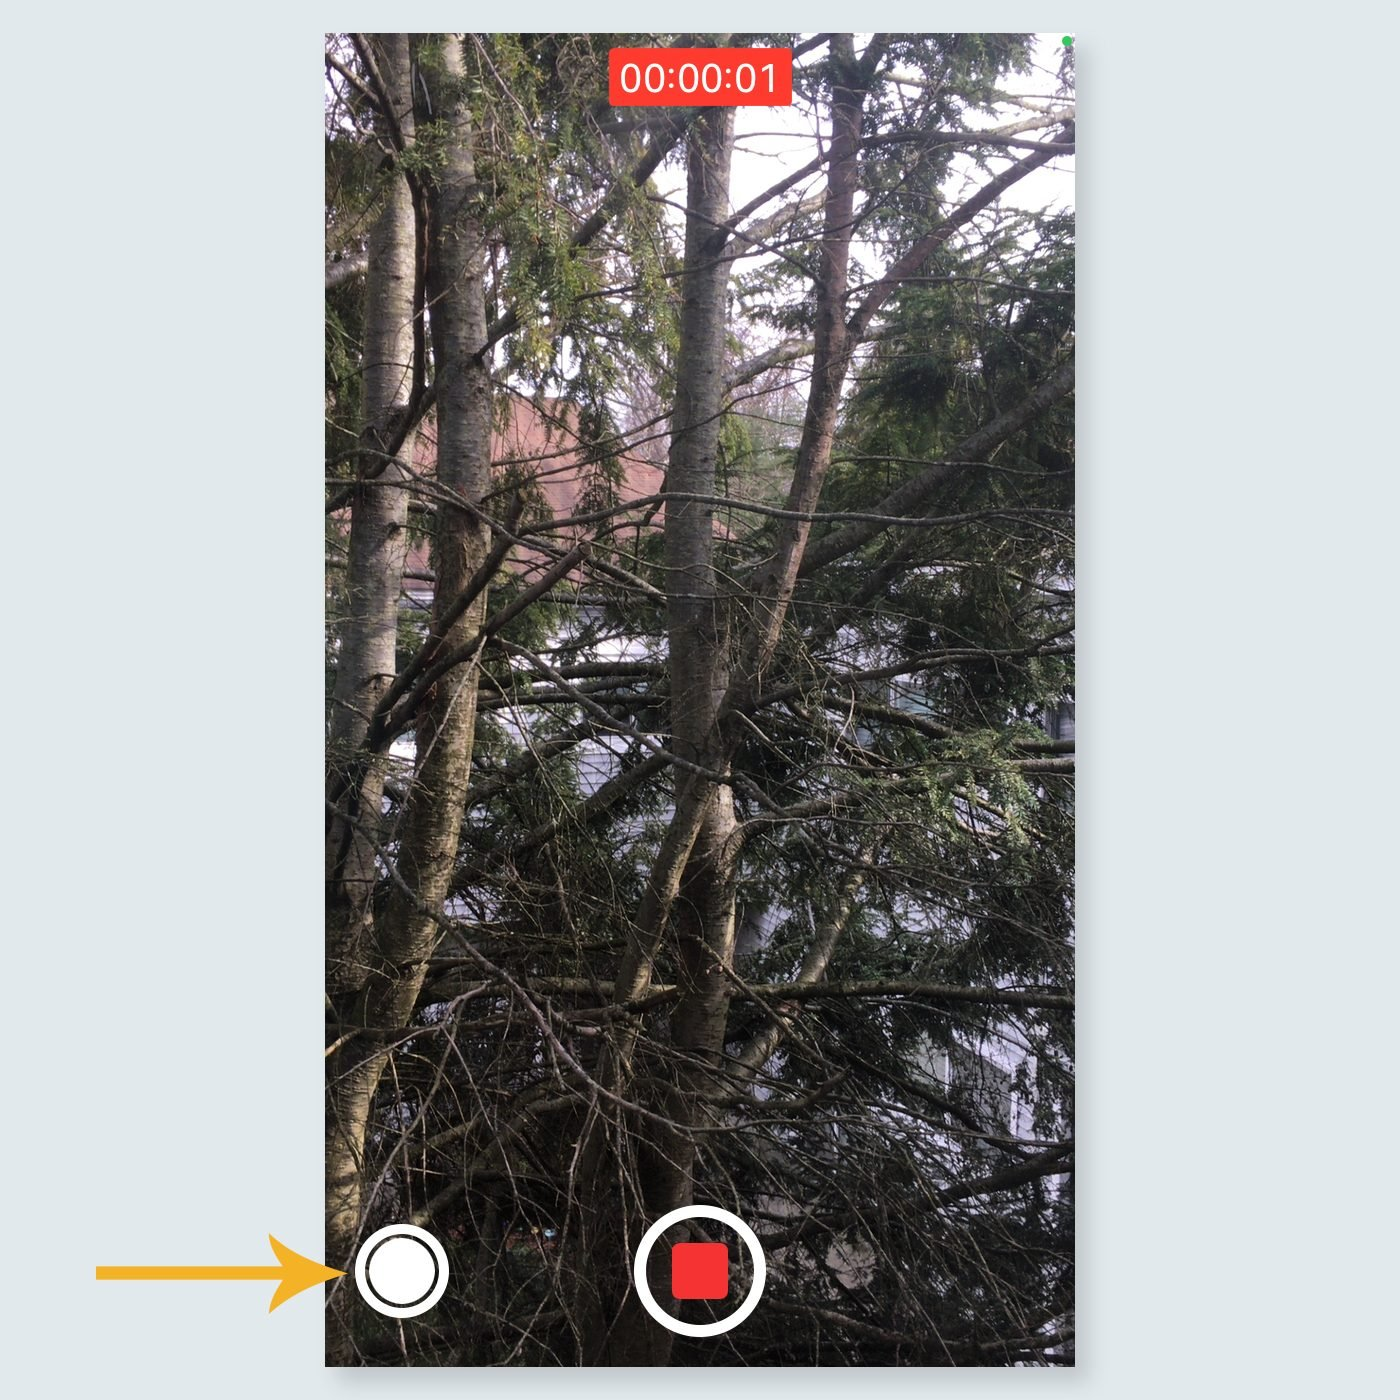 iphone tricks - Record a video and take a picture at the same time